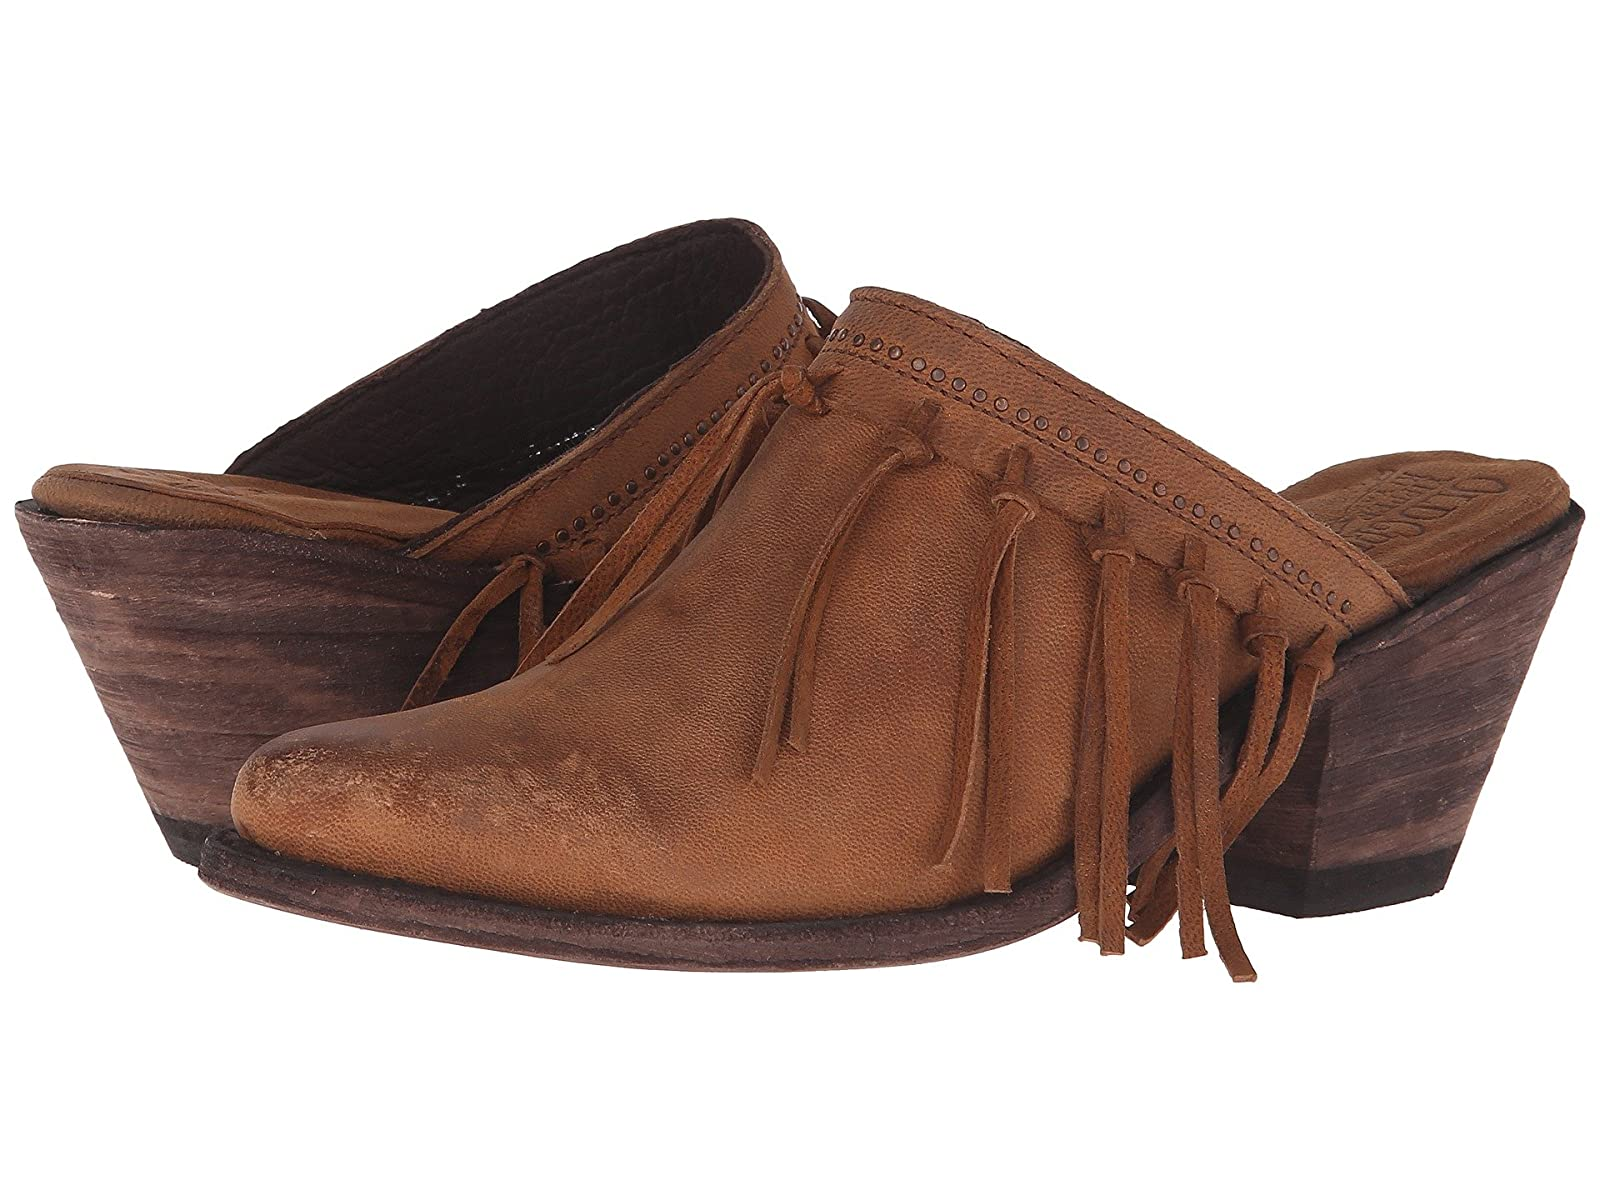 Old Gringo MabelCheap and distinctive eye-catching shoes